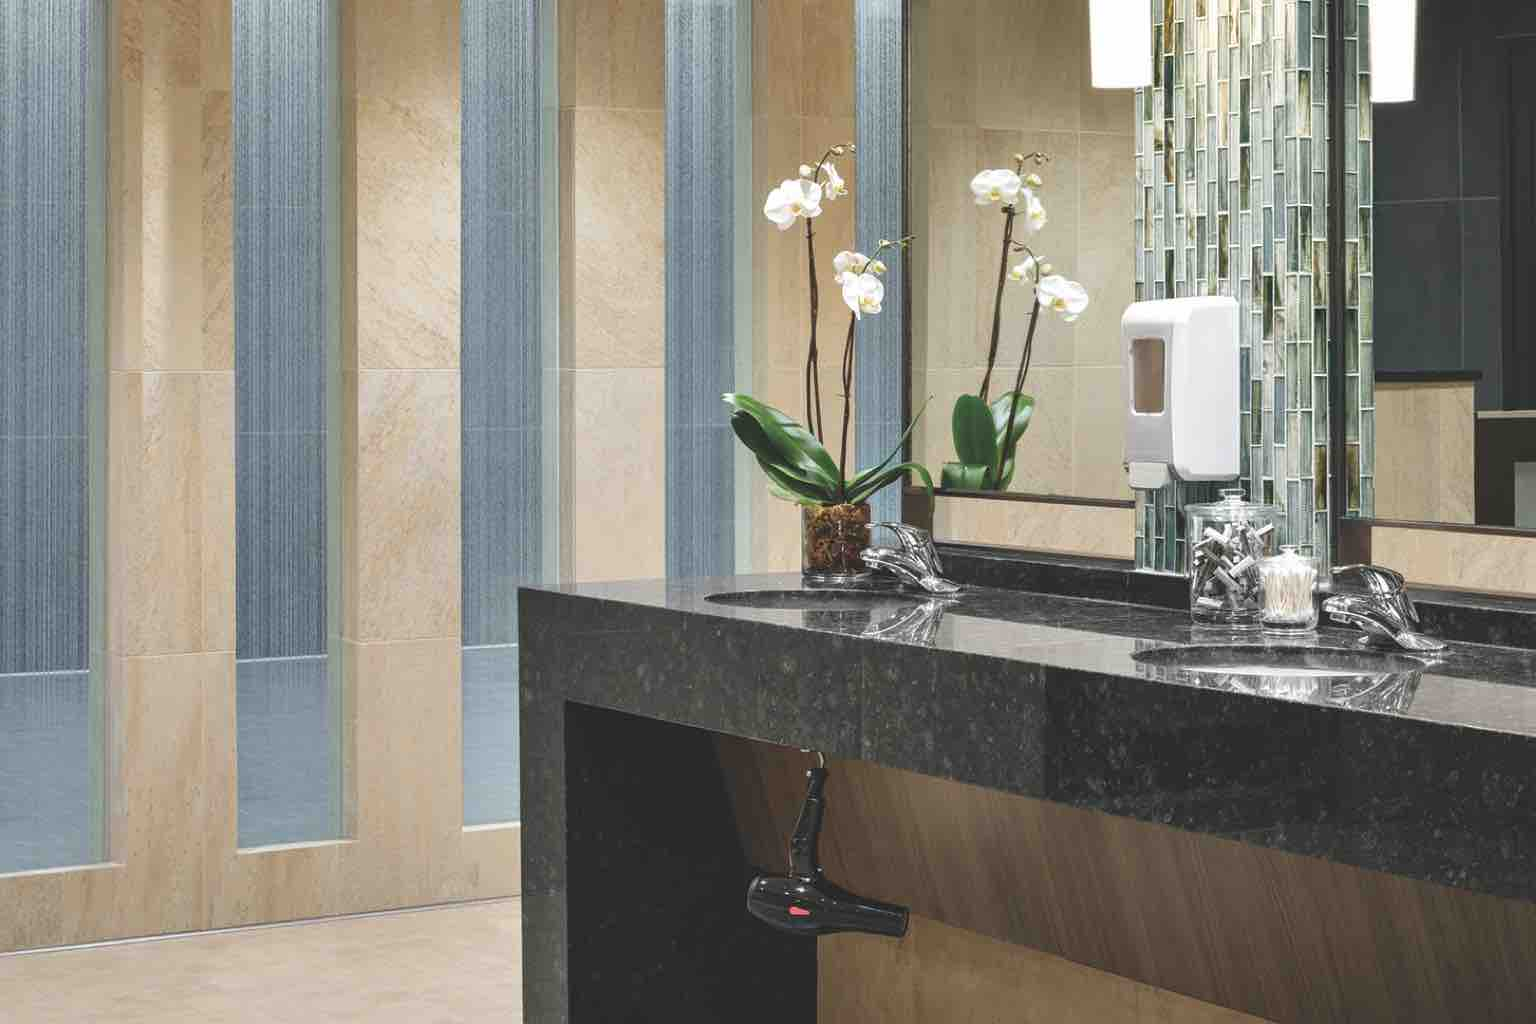 : A luxurious locker room with a row of three sinks in a black marble counter with tiled backsplash and hand soap dispensers